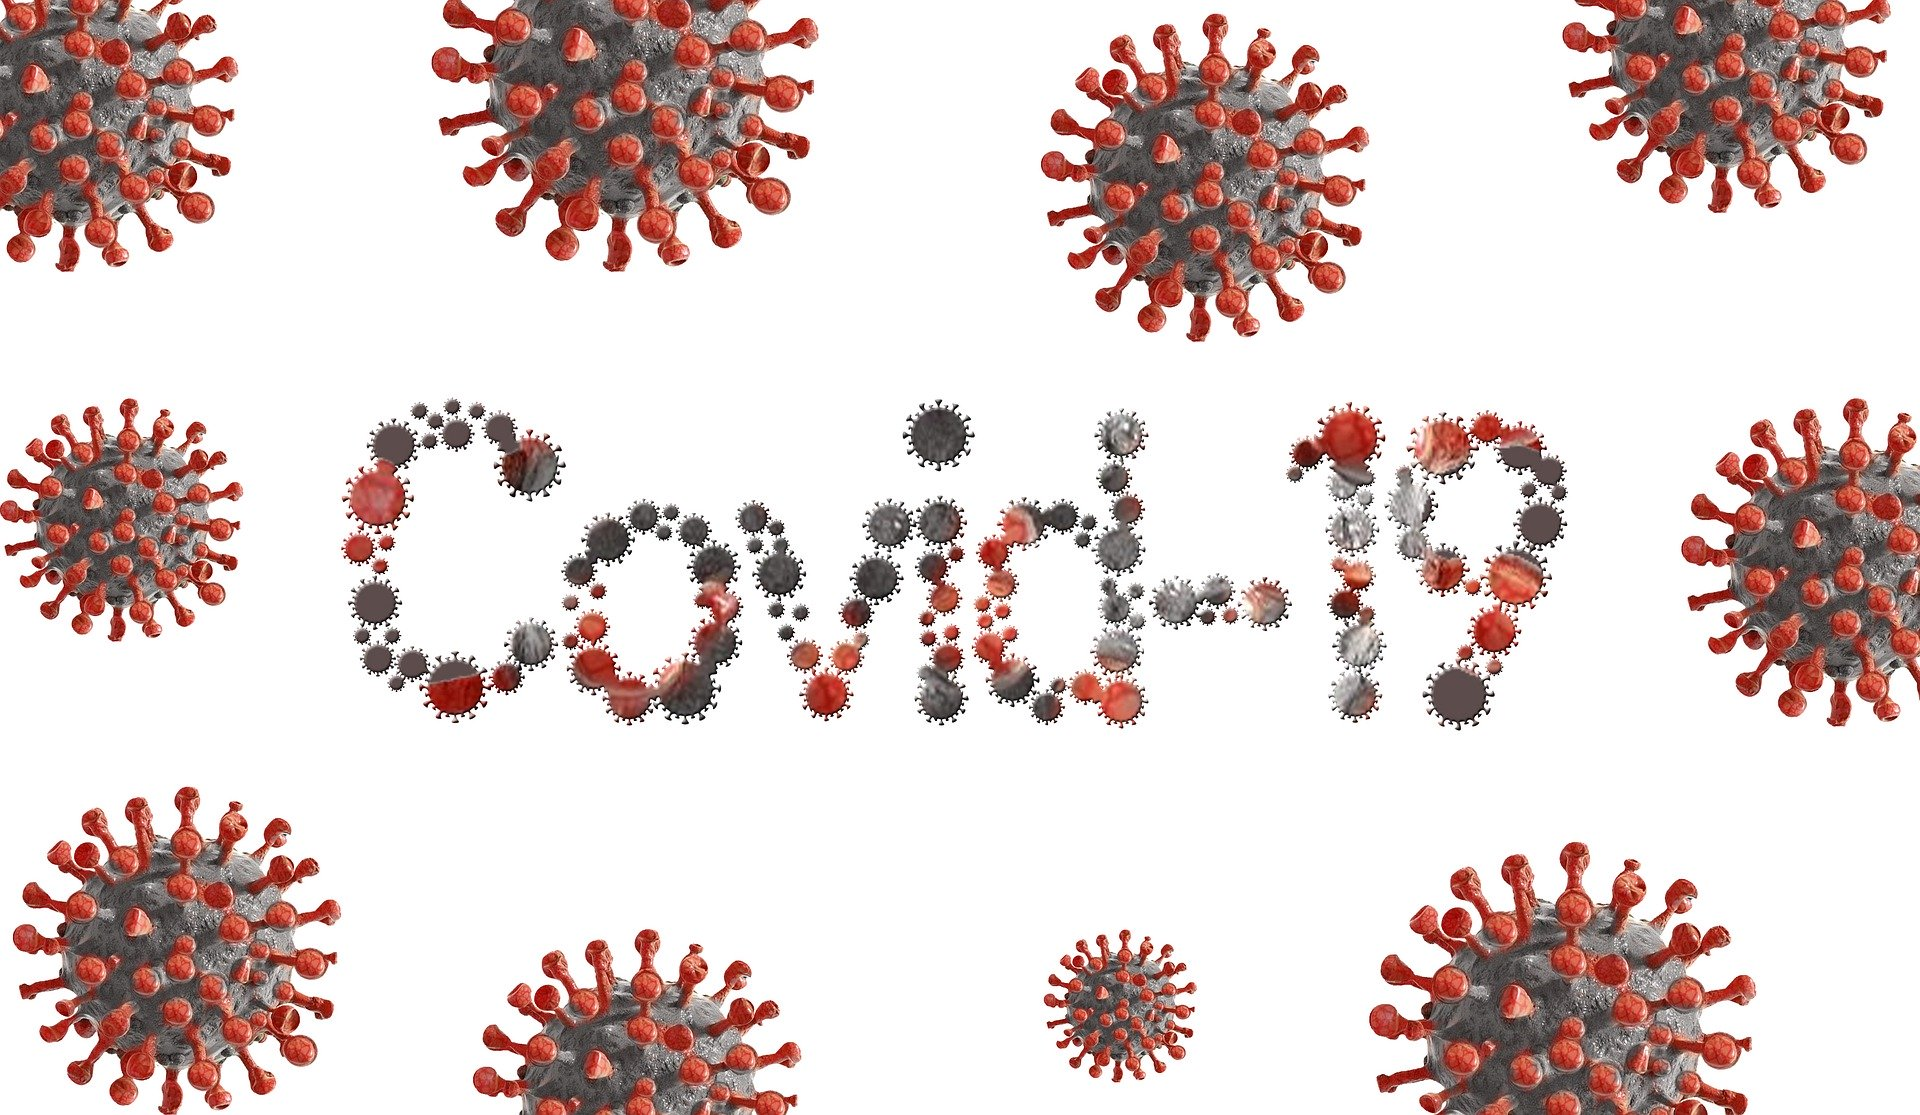 Coronavirus fake news: the parallel pandemic